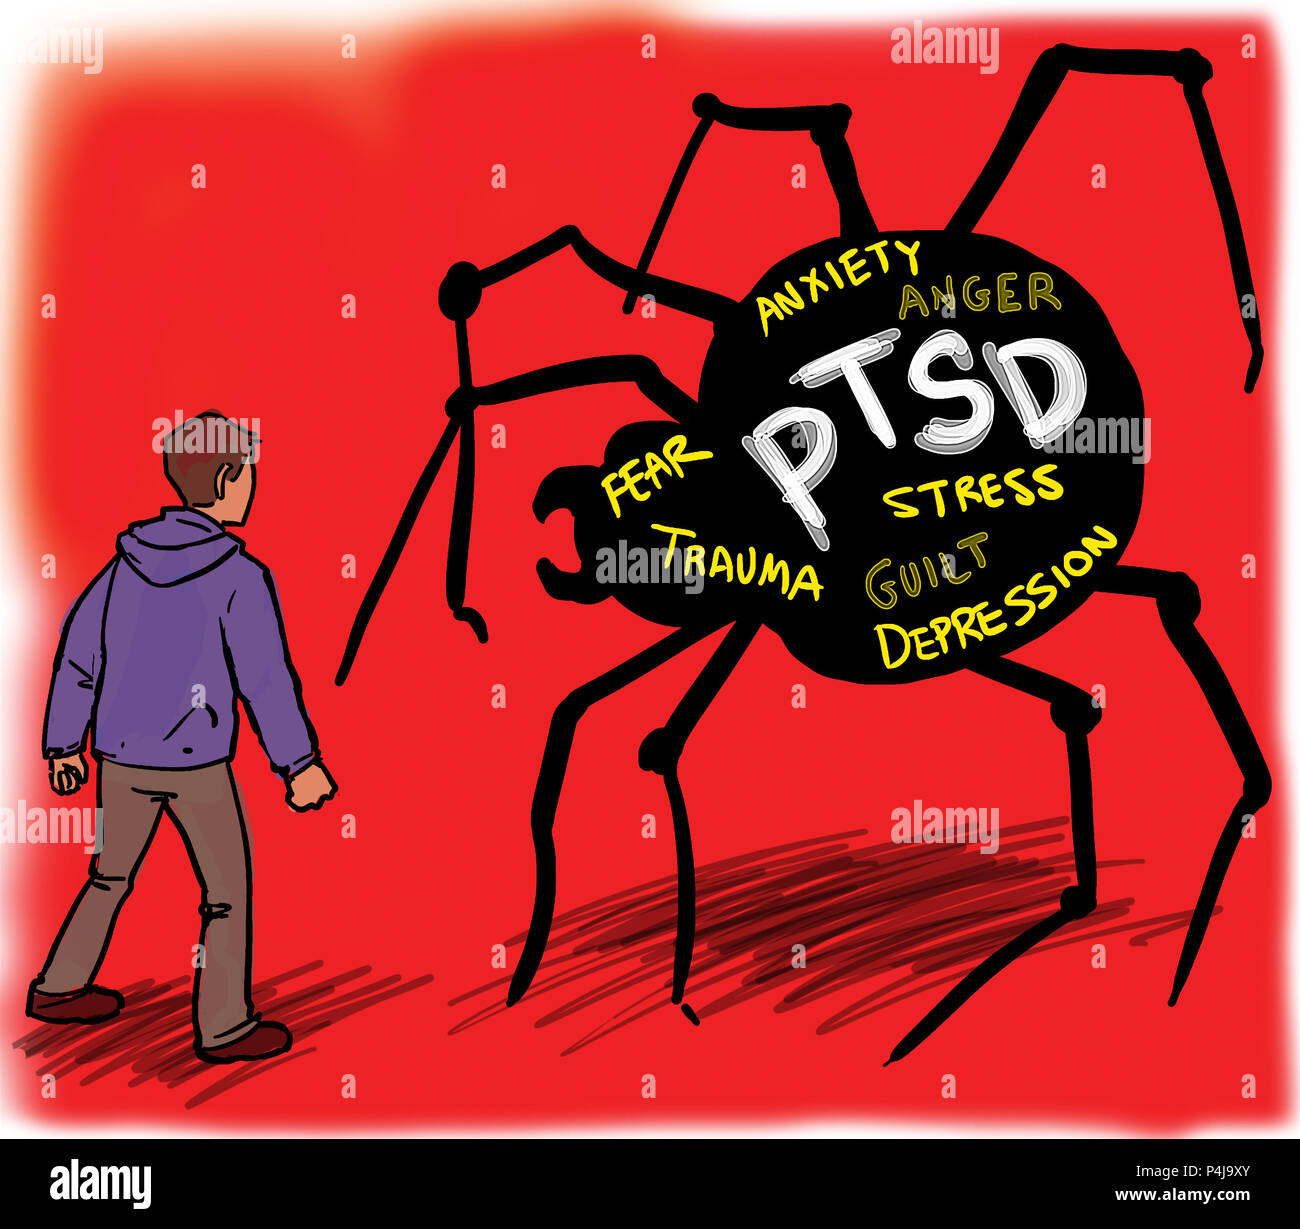 Man Suffering Dealing With Ptsd Post Traumatic Stress